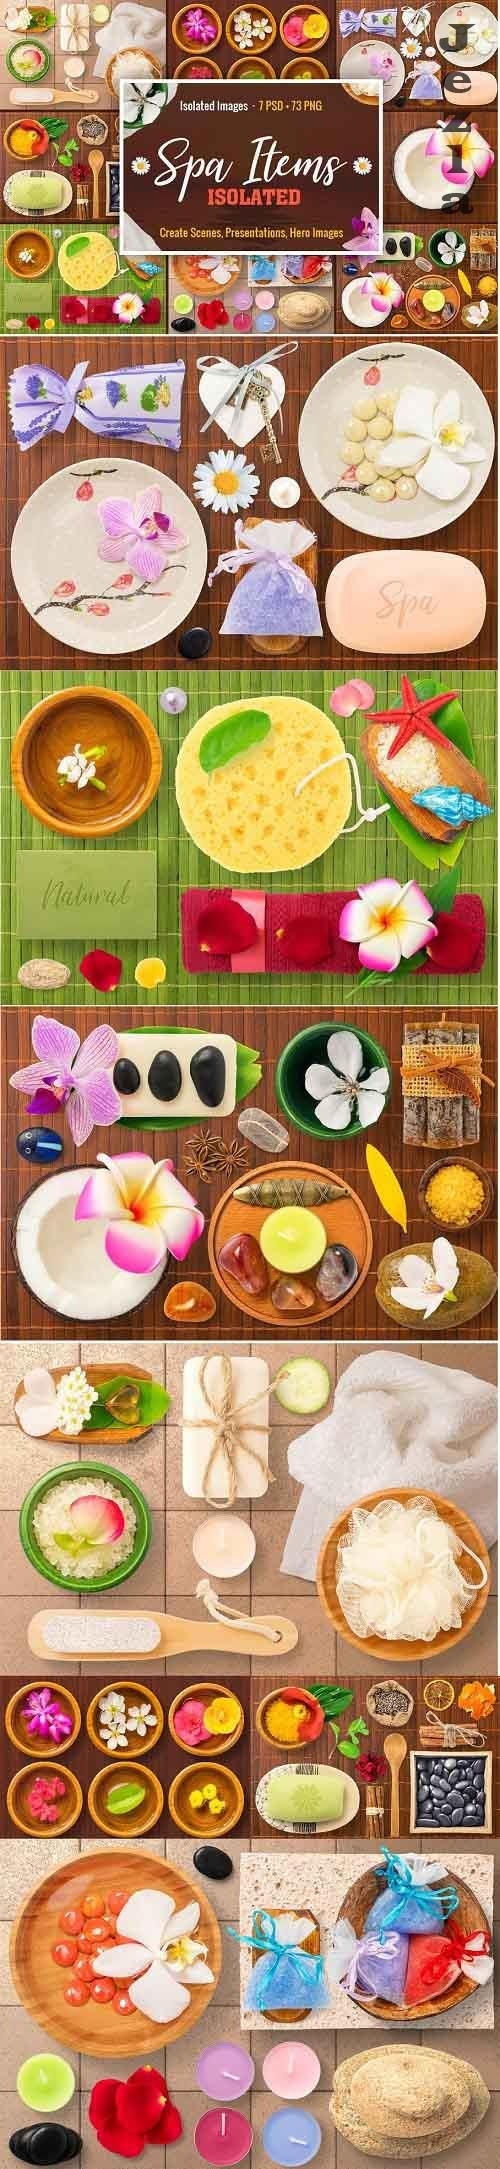 Isolated Spa Items - 1775489